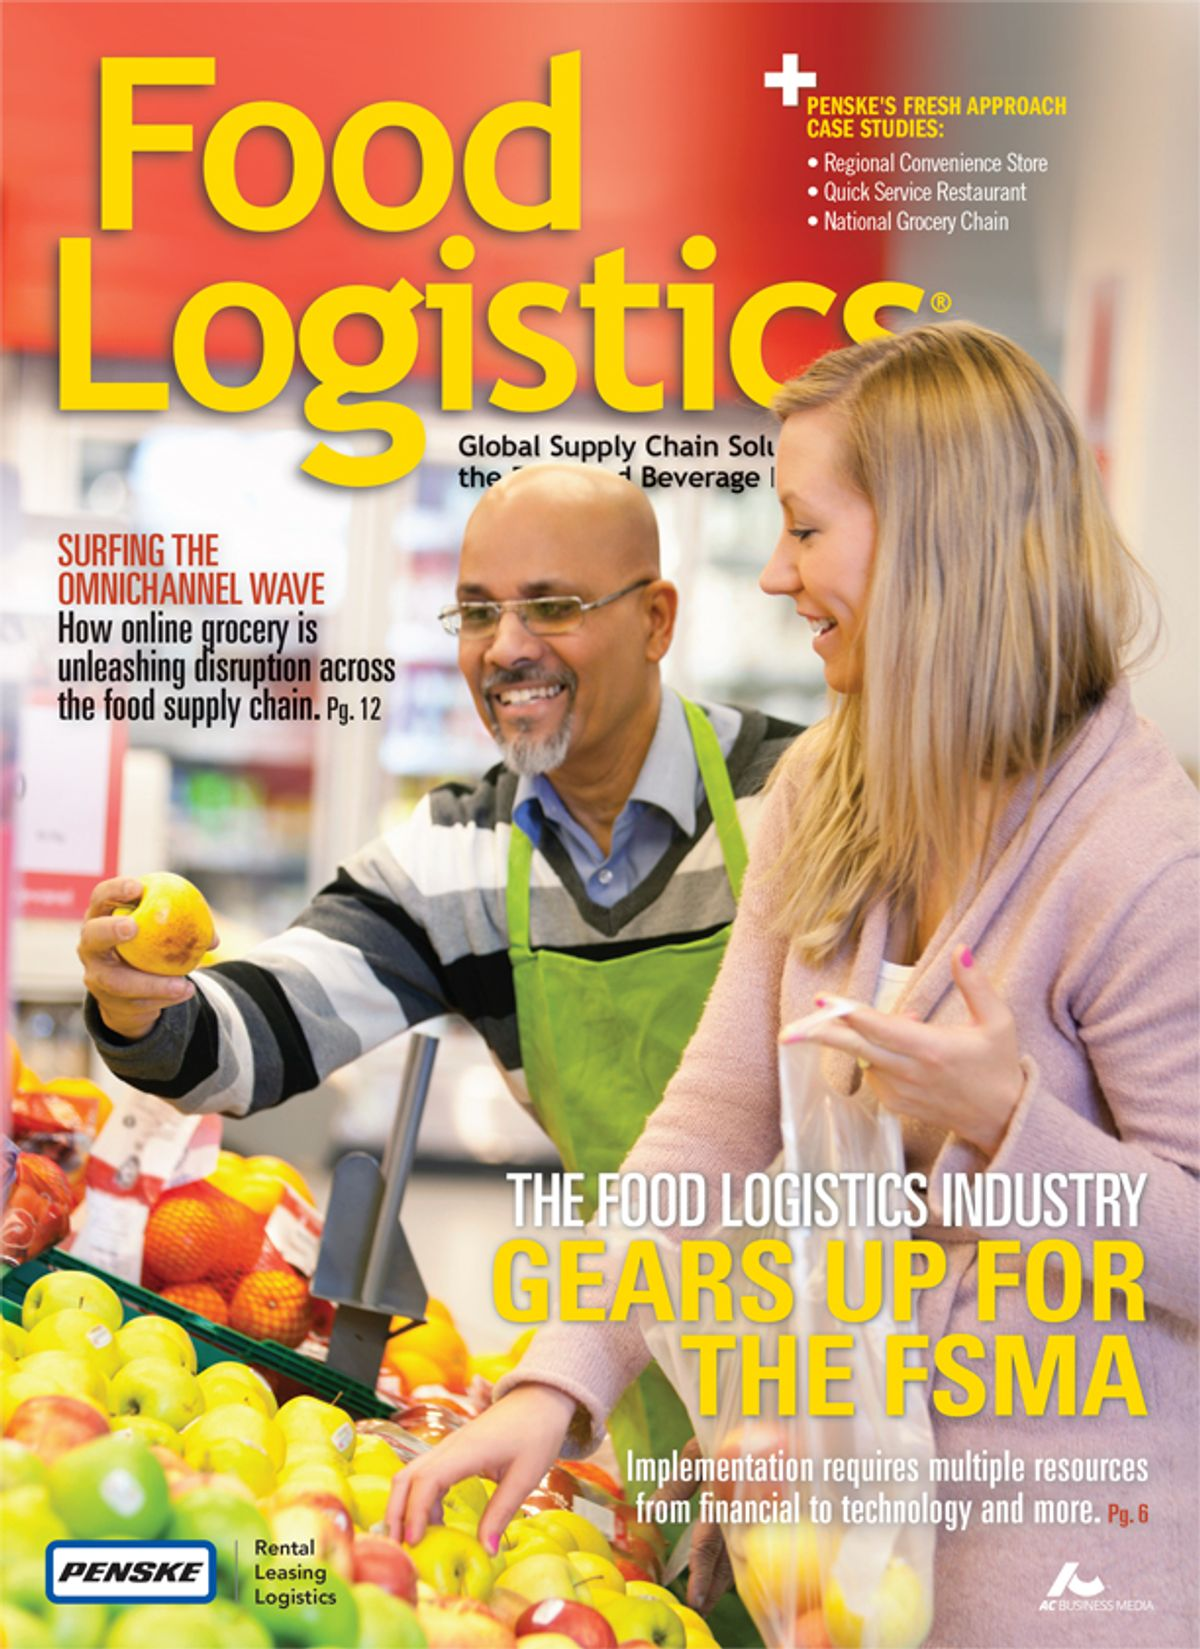 Food Logistics Magazine and Penske Team Up for Special Edition